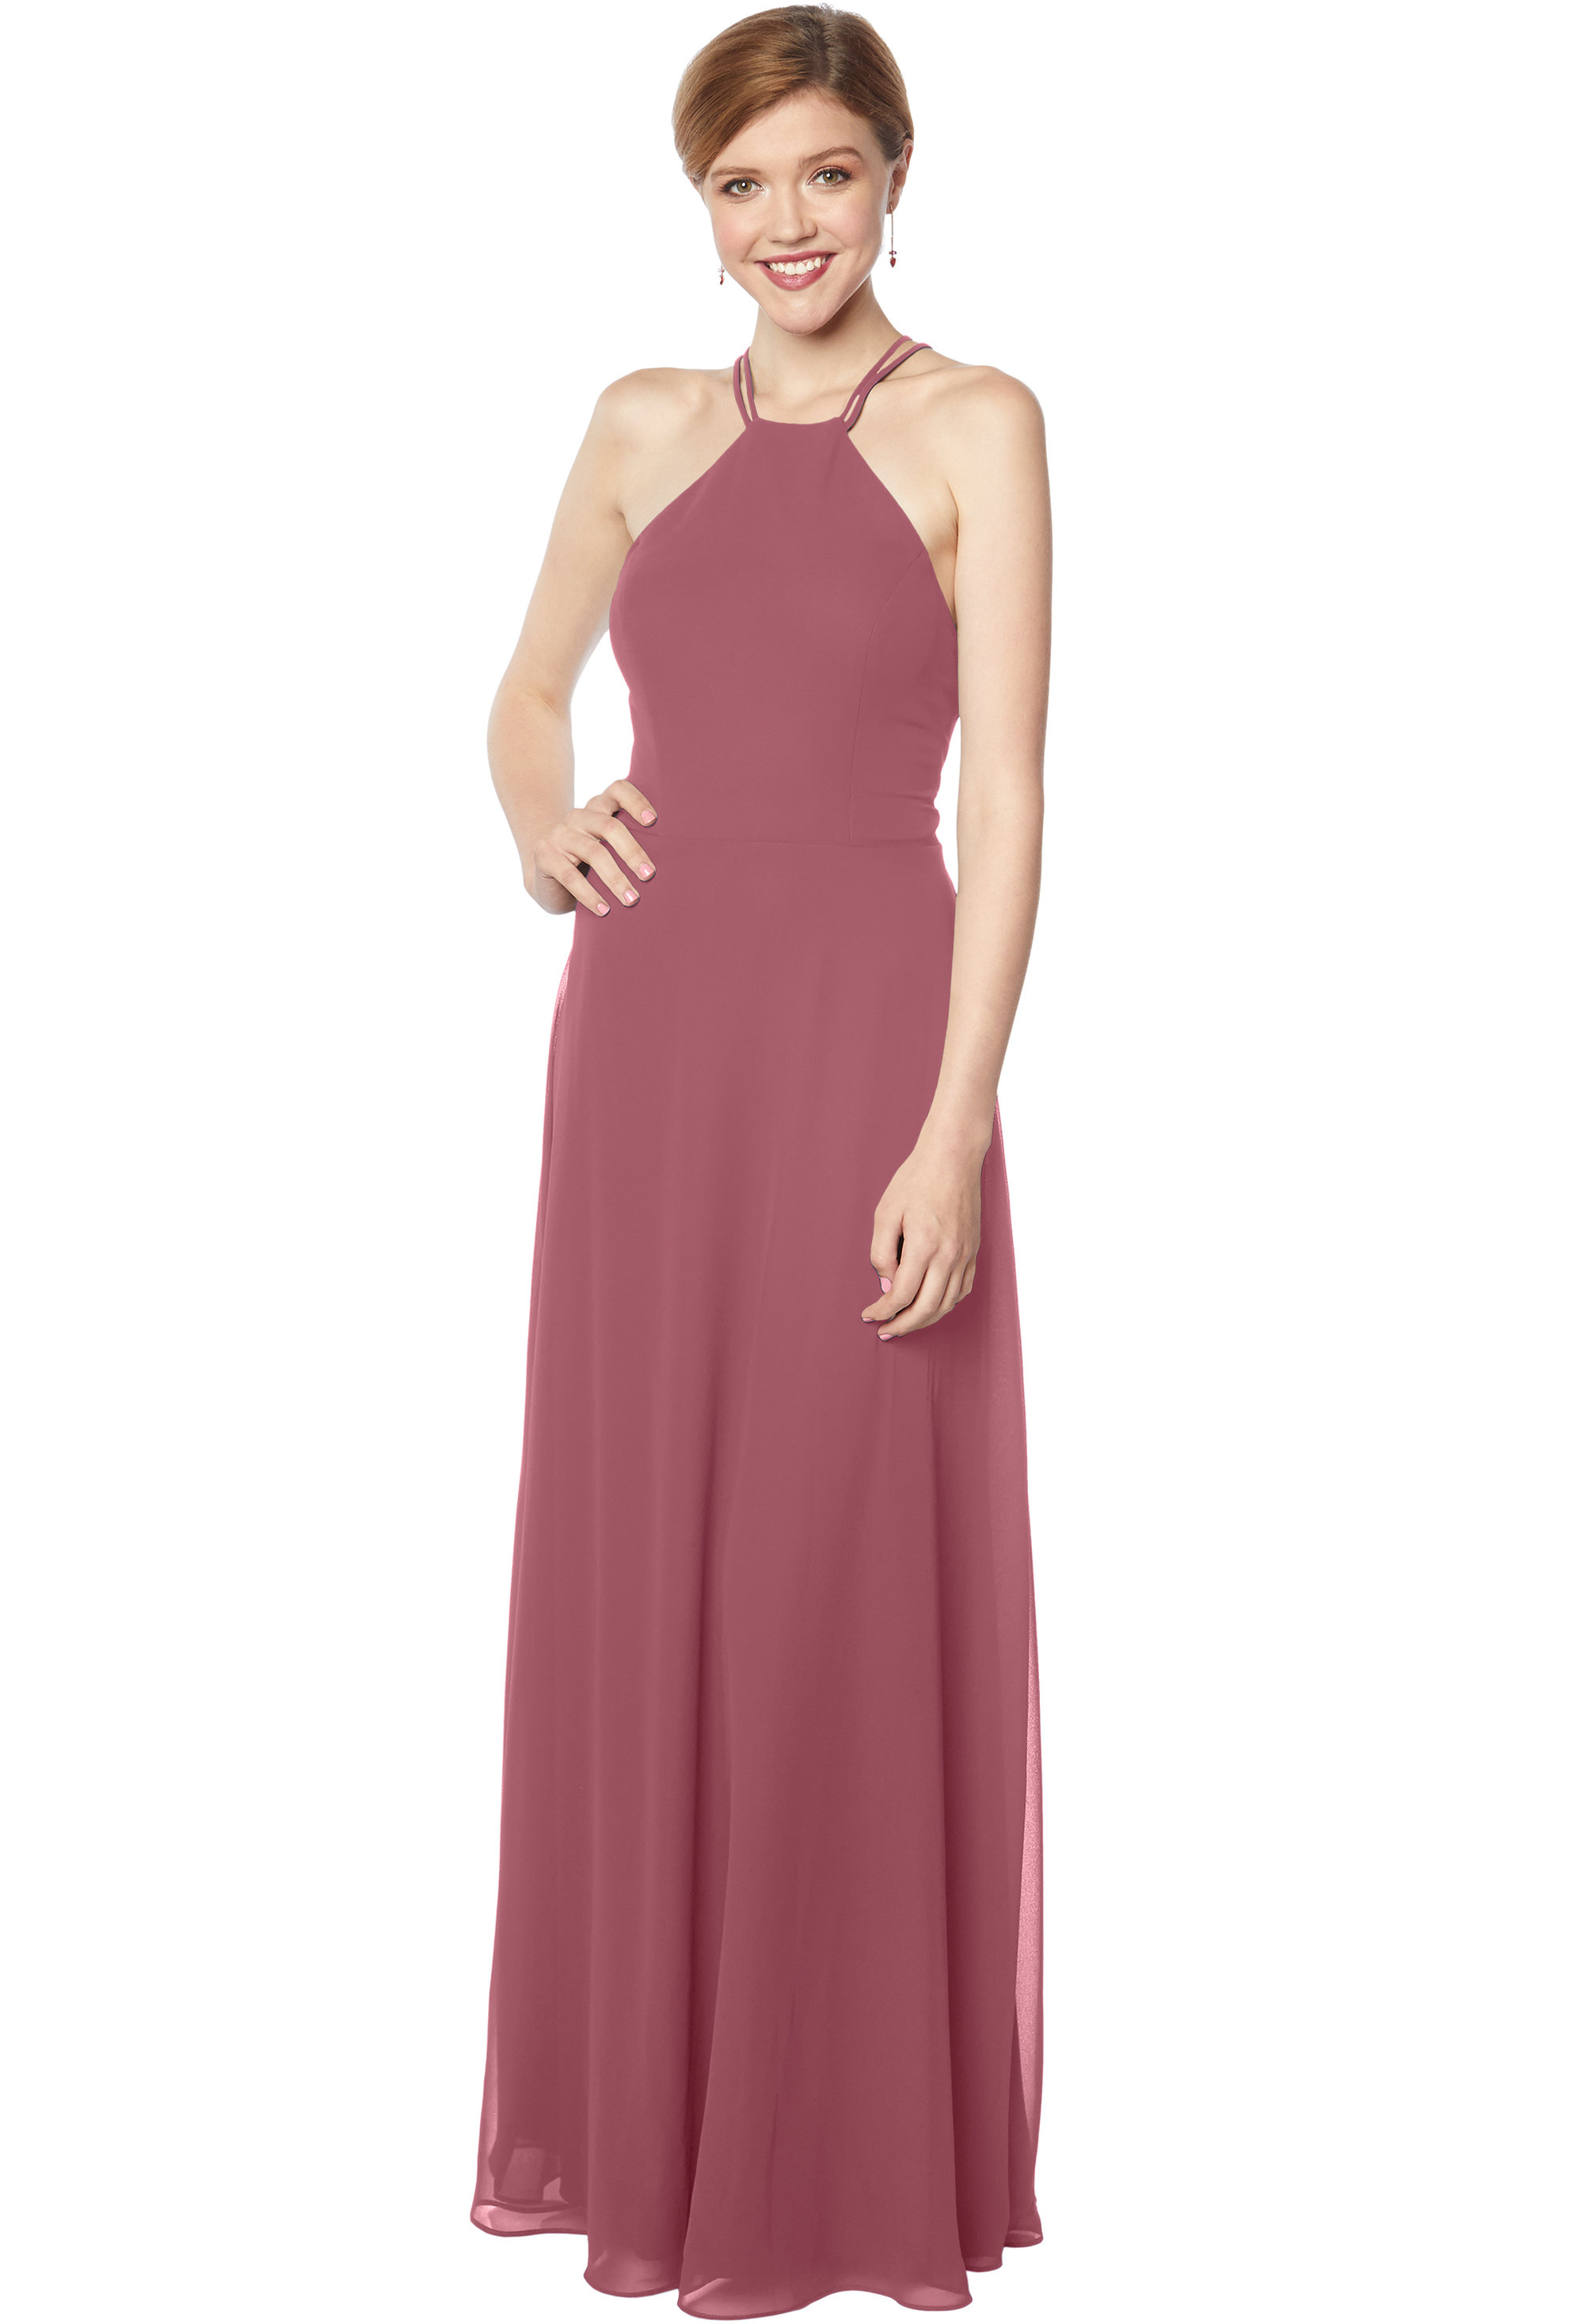 Bill Levkoff ROSEWOOD Chiffon Sleeveless A-line gown, $178.00 Front